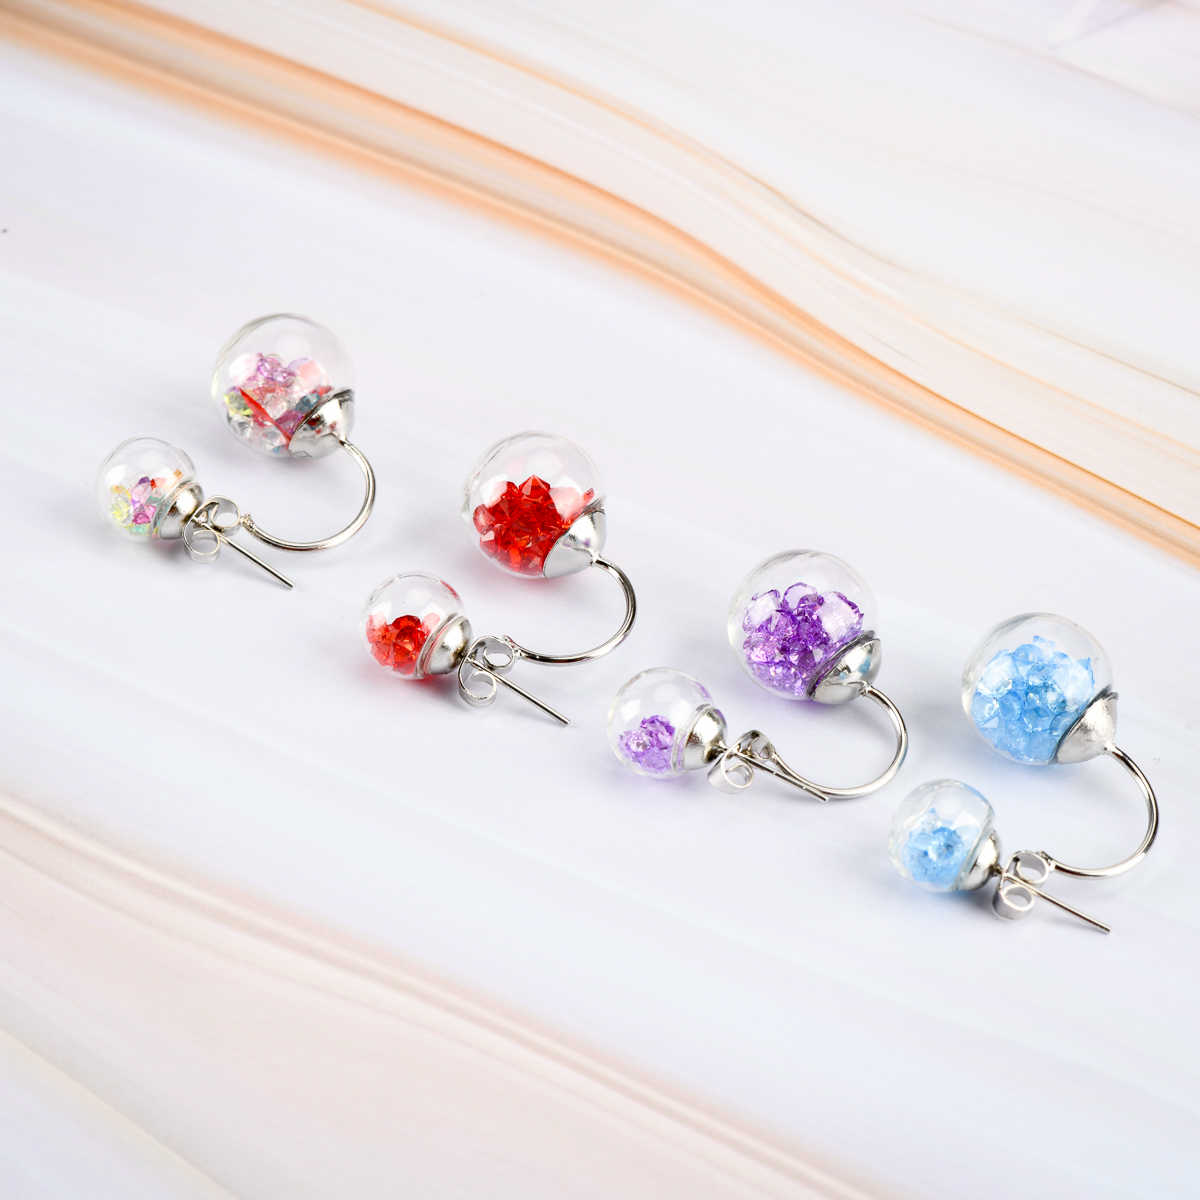 Hollow Glass Ball Earrings For Women Fasion Jewelries DIY Gift Stud Earring For Girls  Wholesale Dropshipping #IZ431